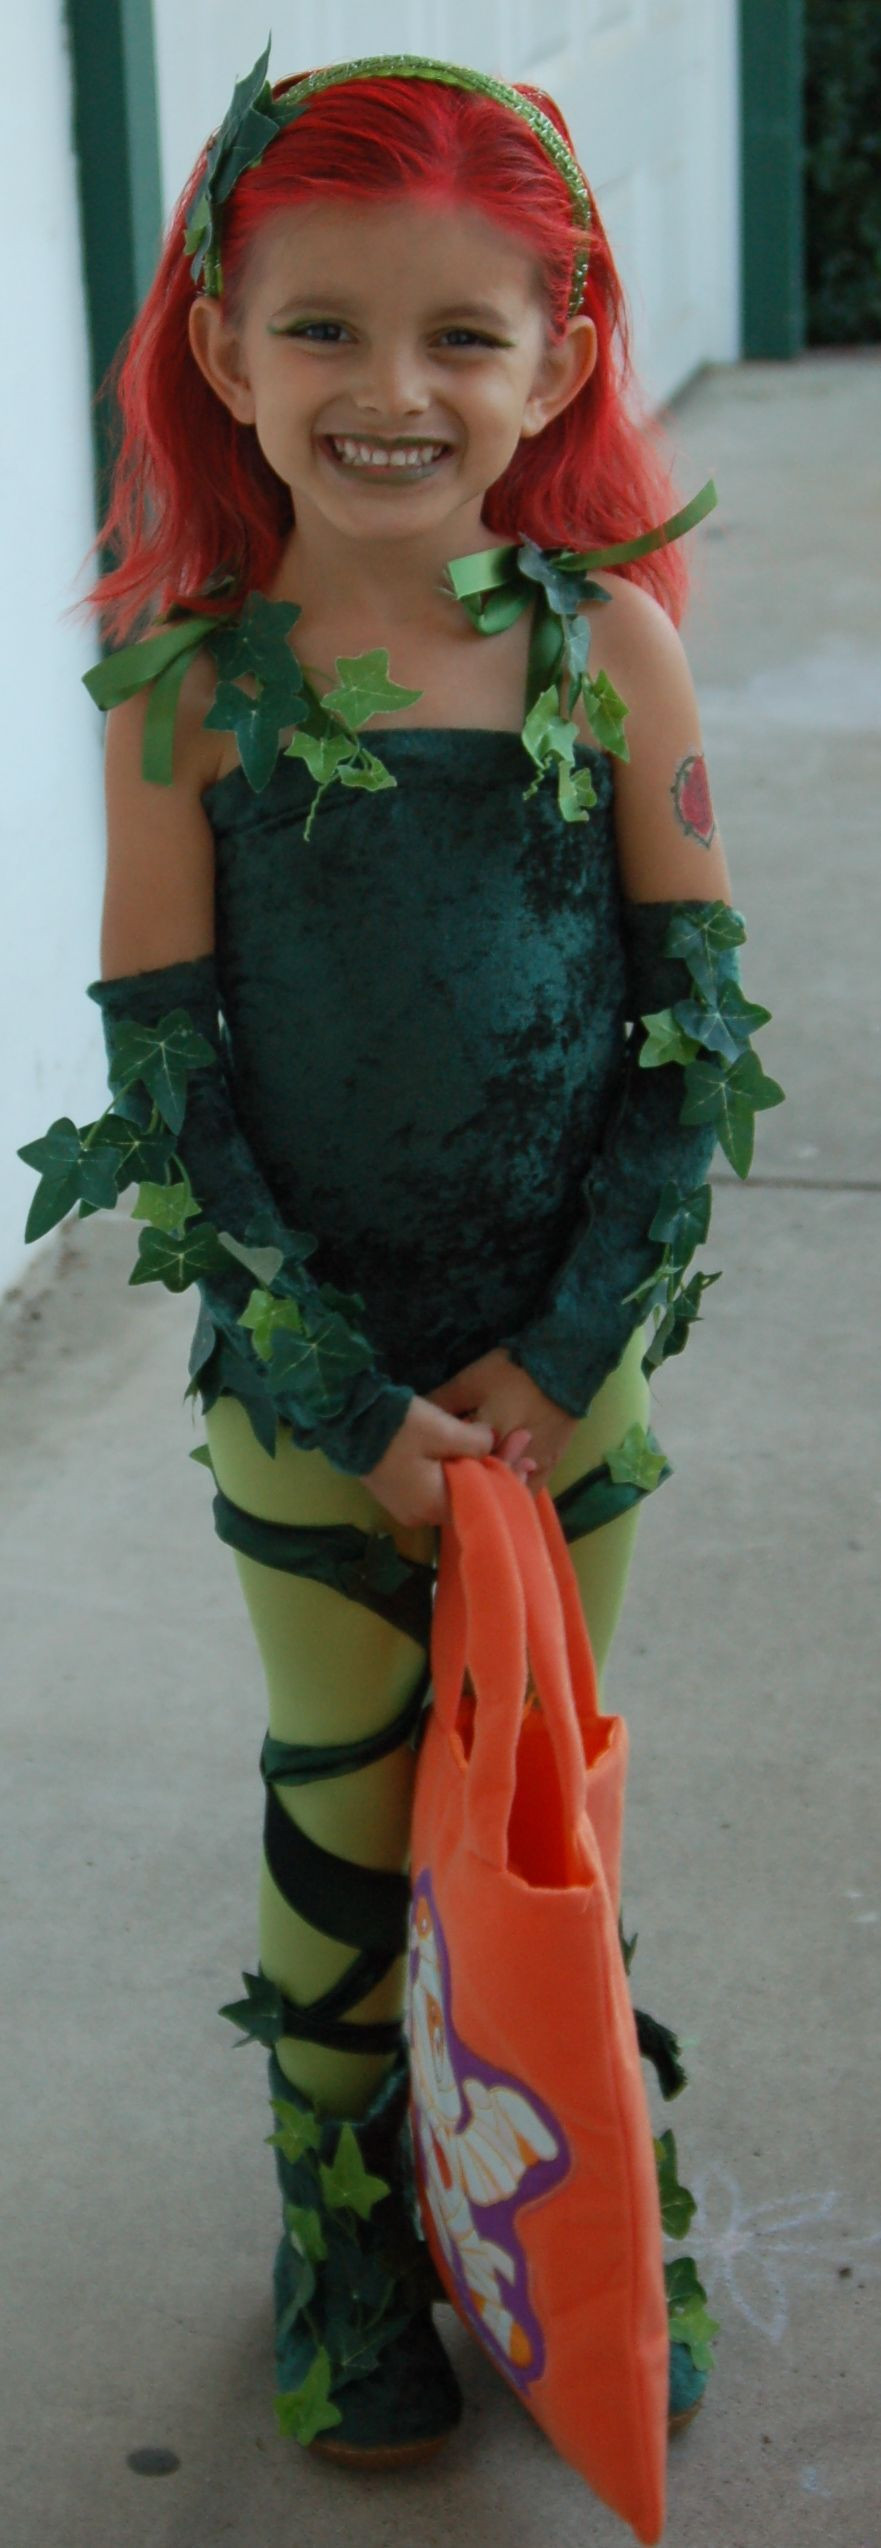 Best ideas about Poison Ivy Costume DIY . Save or Pin DIY Poison Ivy Costume is is what Jalen want to be Now.